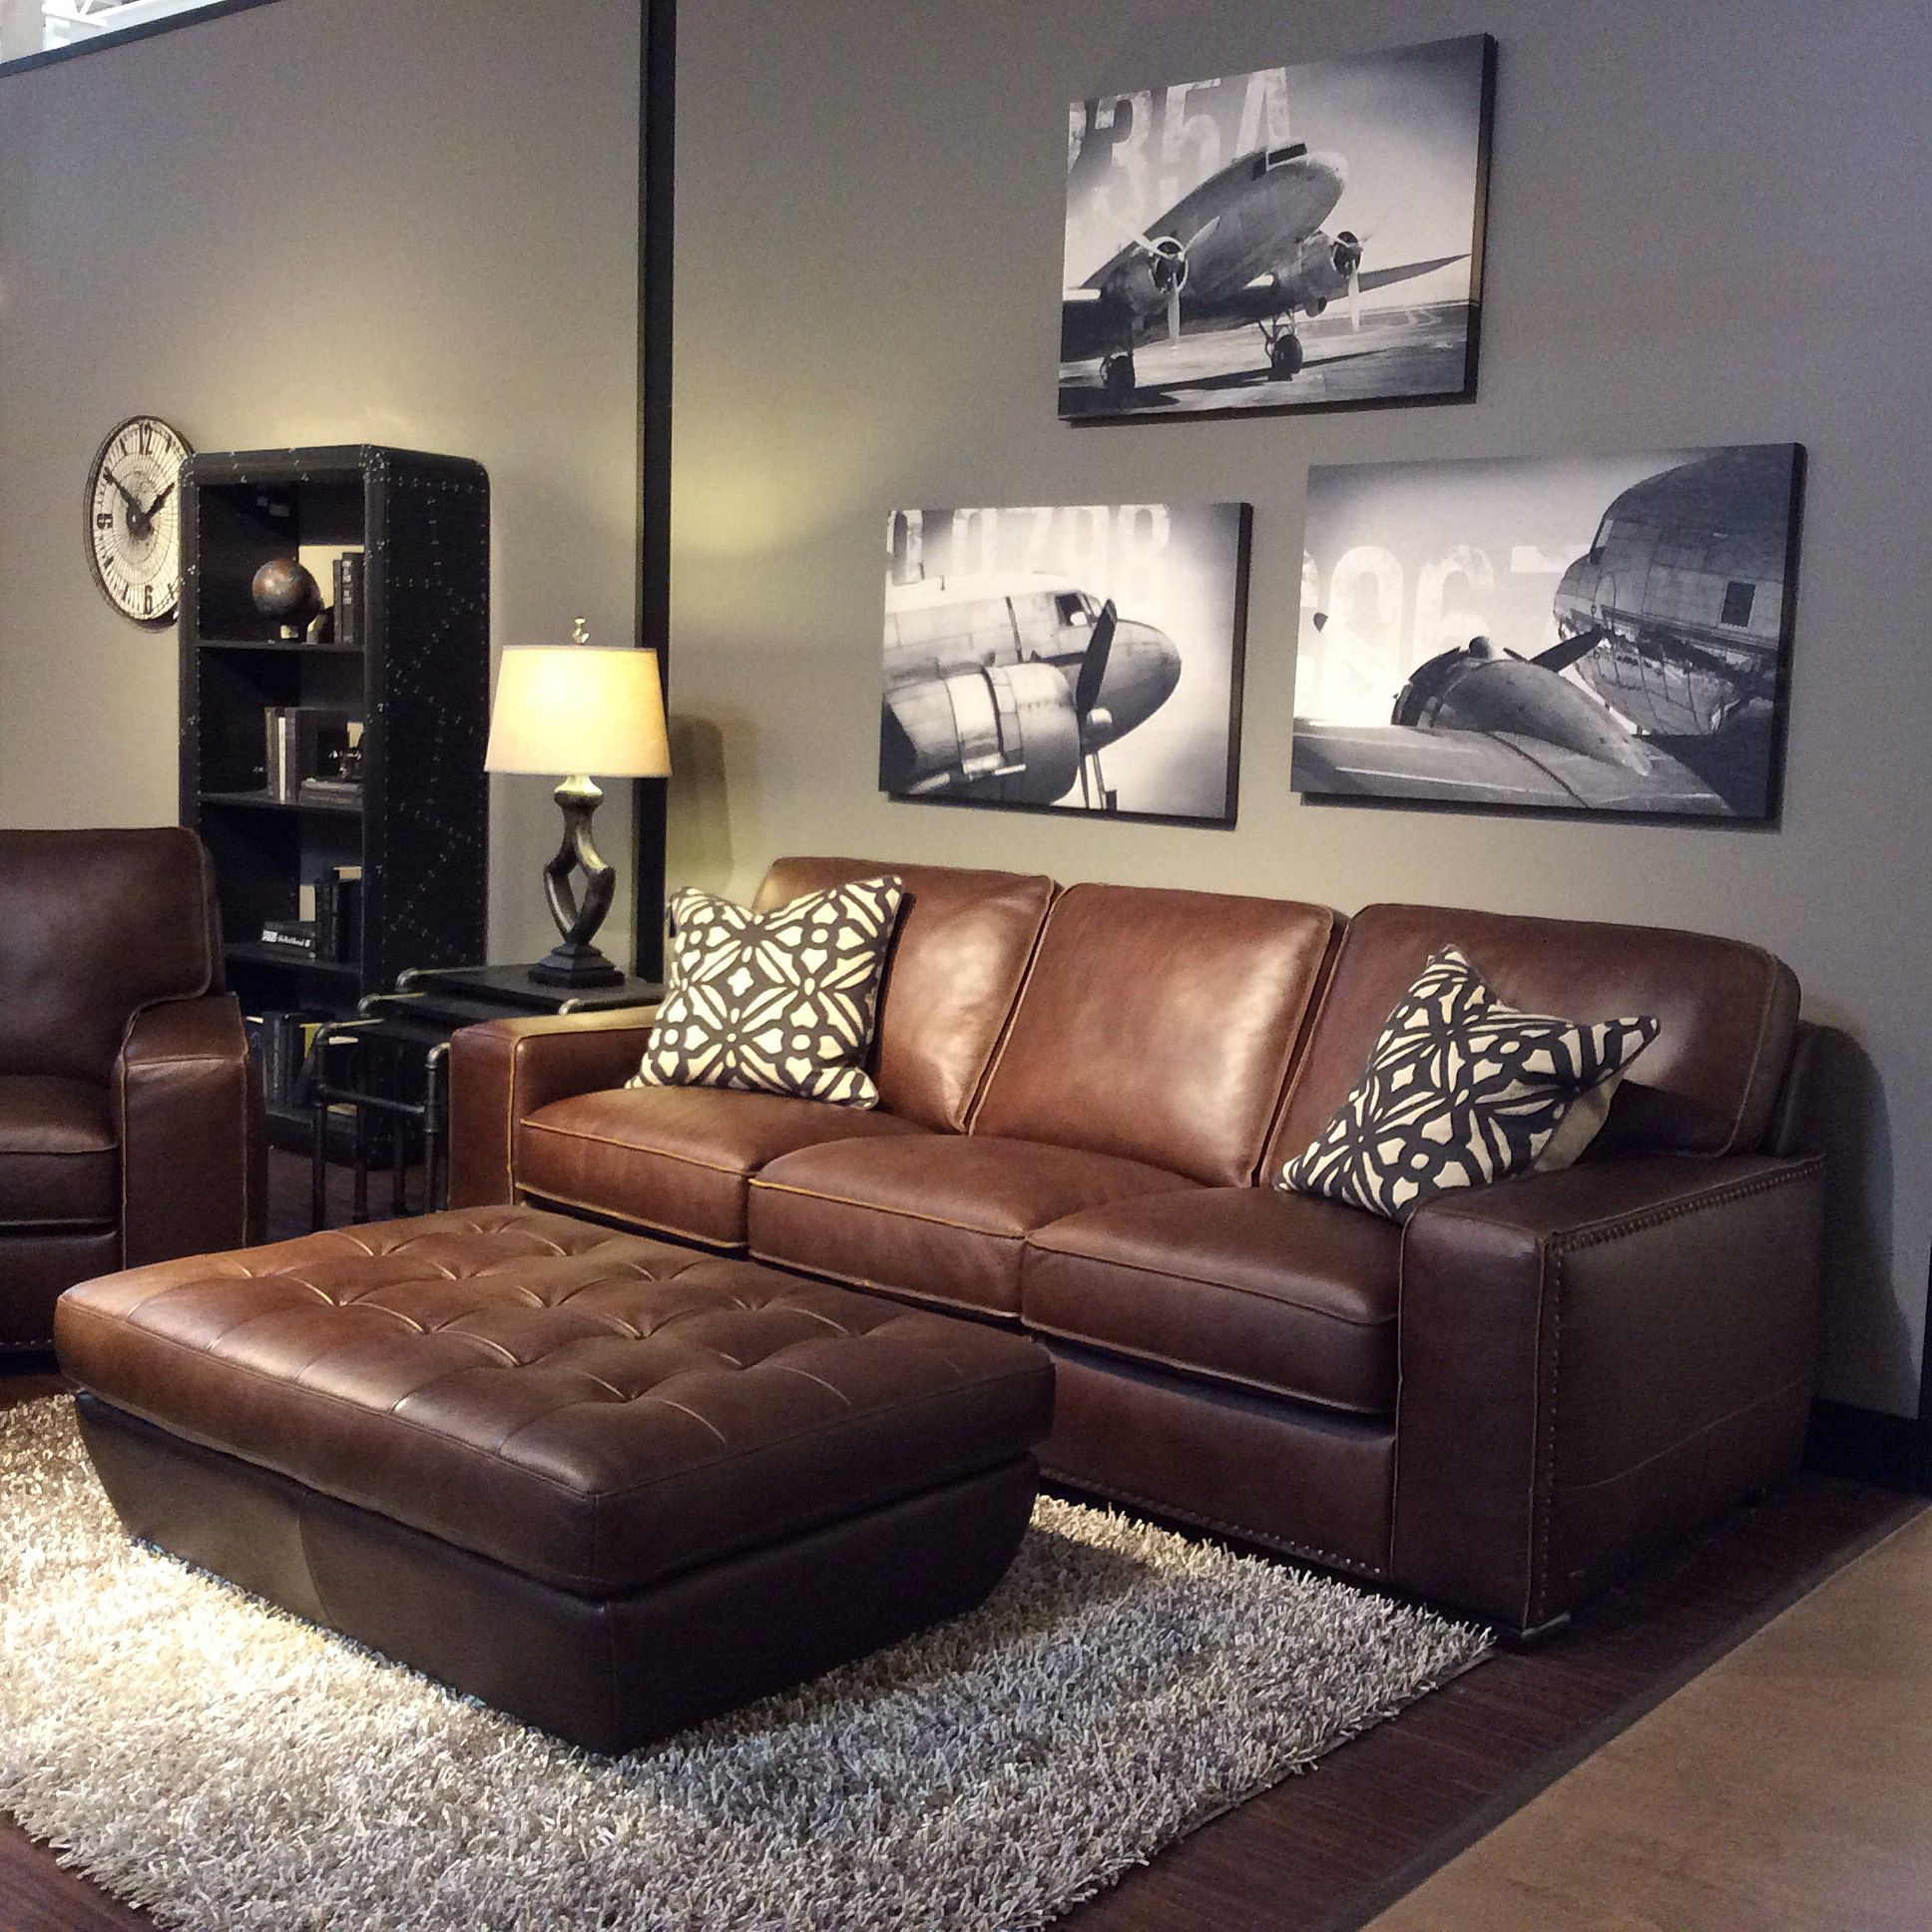 brown color leather sofa best built reclining sofas family room with warm gray walls black and white art